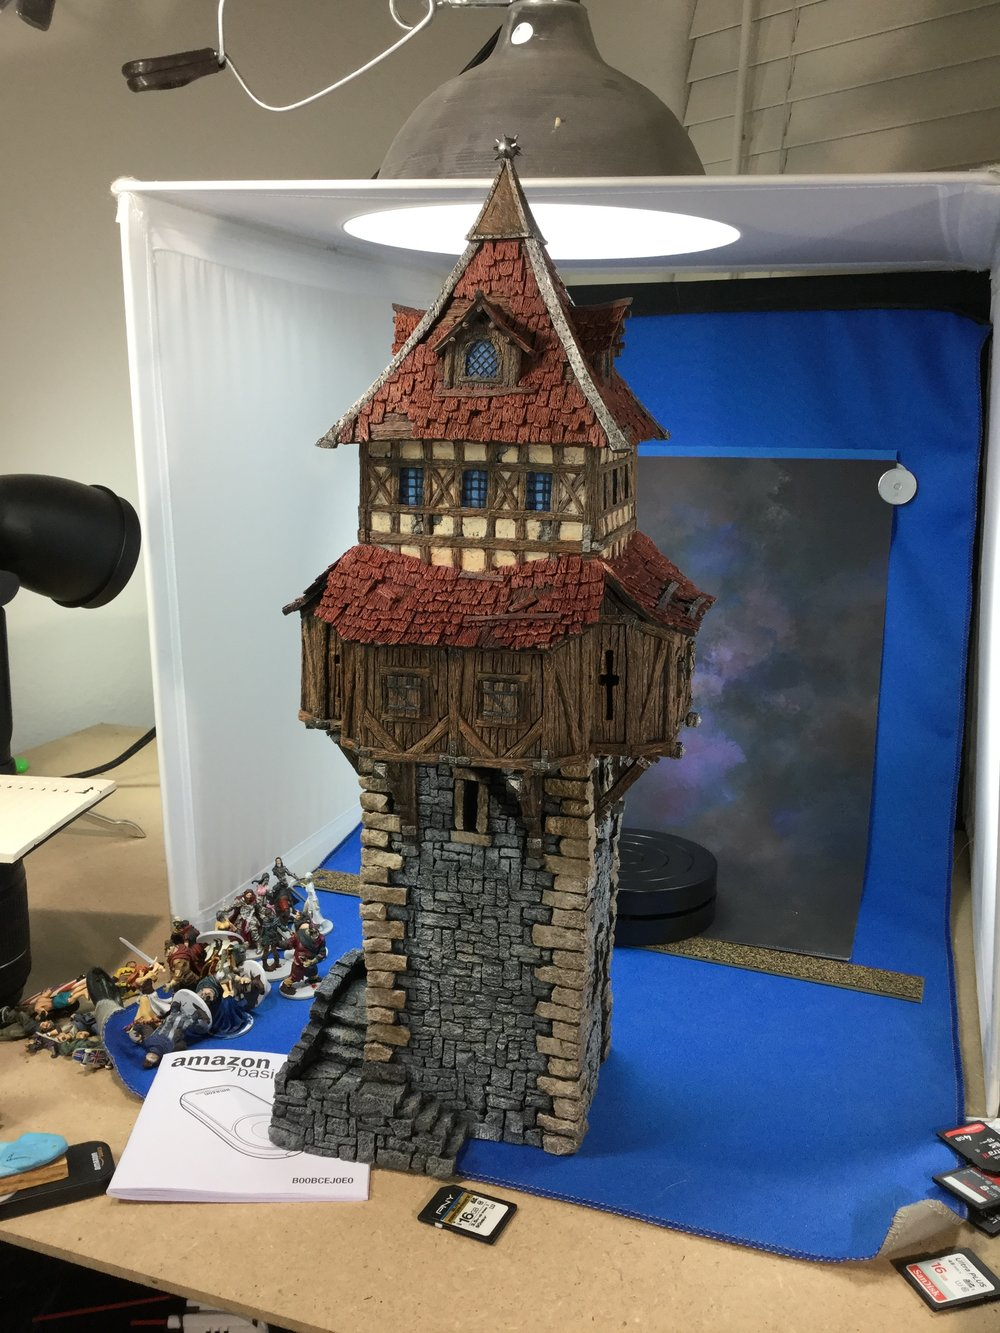 The watchtower. This thing is Beautiful!  I totally want one.